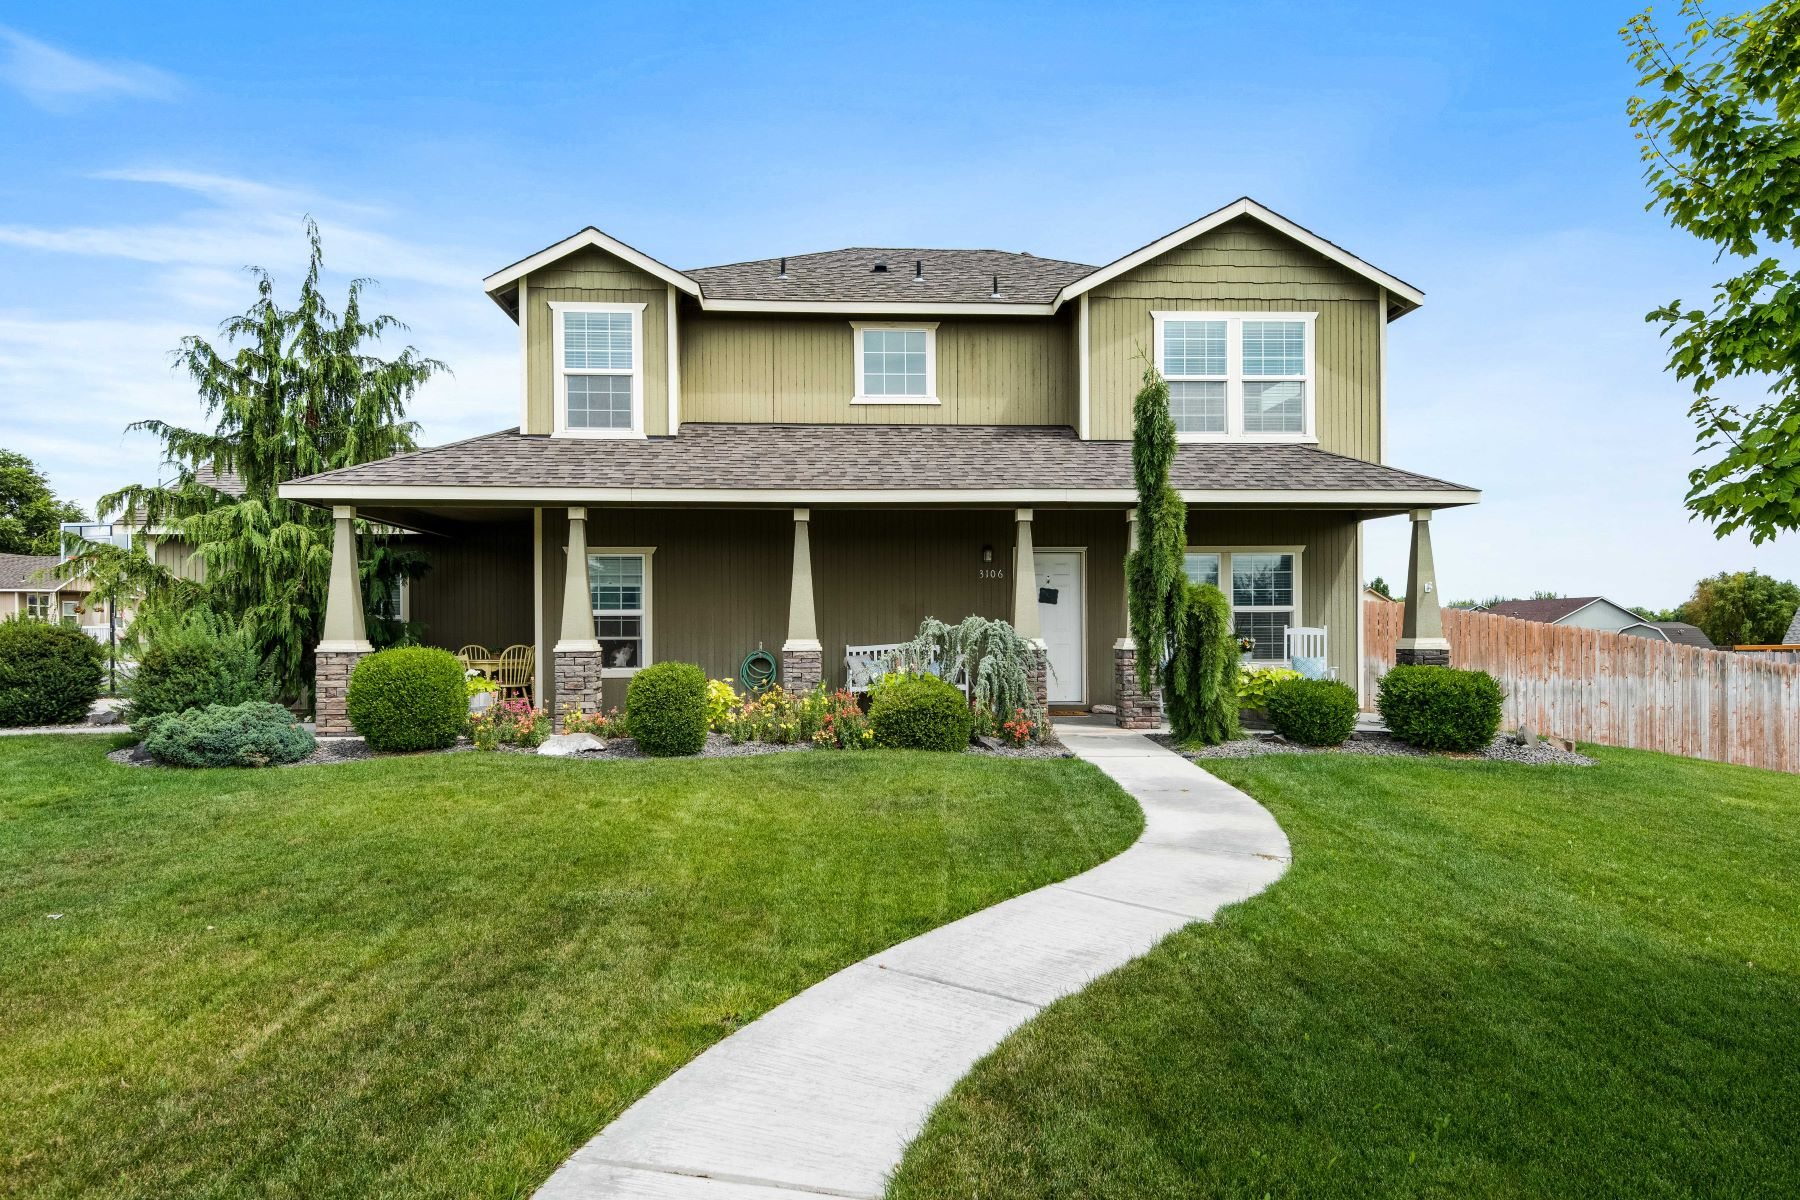 Single Family Homes for Sale at MOVE IN READY 3106 S Highlands Blvd West Richland, Washington 99354 United States